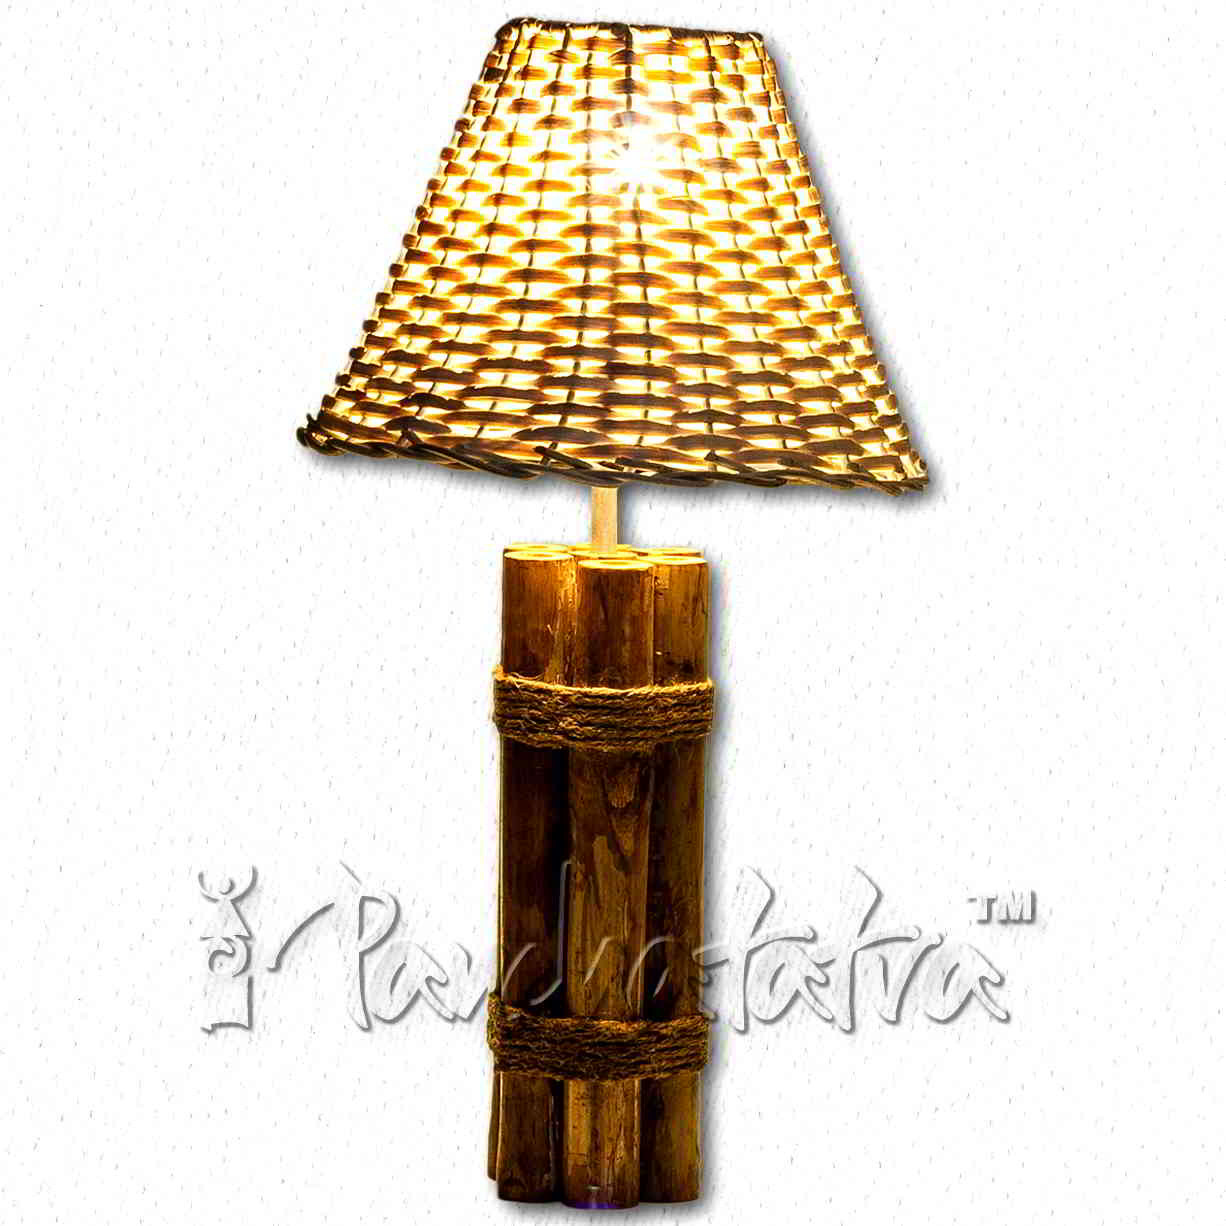 Best ideas about Rustic Desk Lamp . Save or Pin Buy Room Decorative Desk Lamp made using Rustic Wood Now.